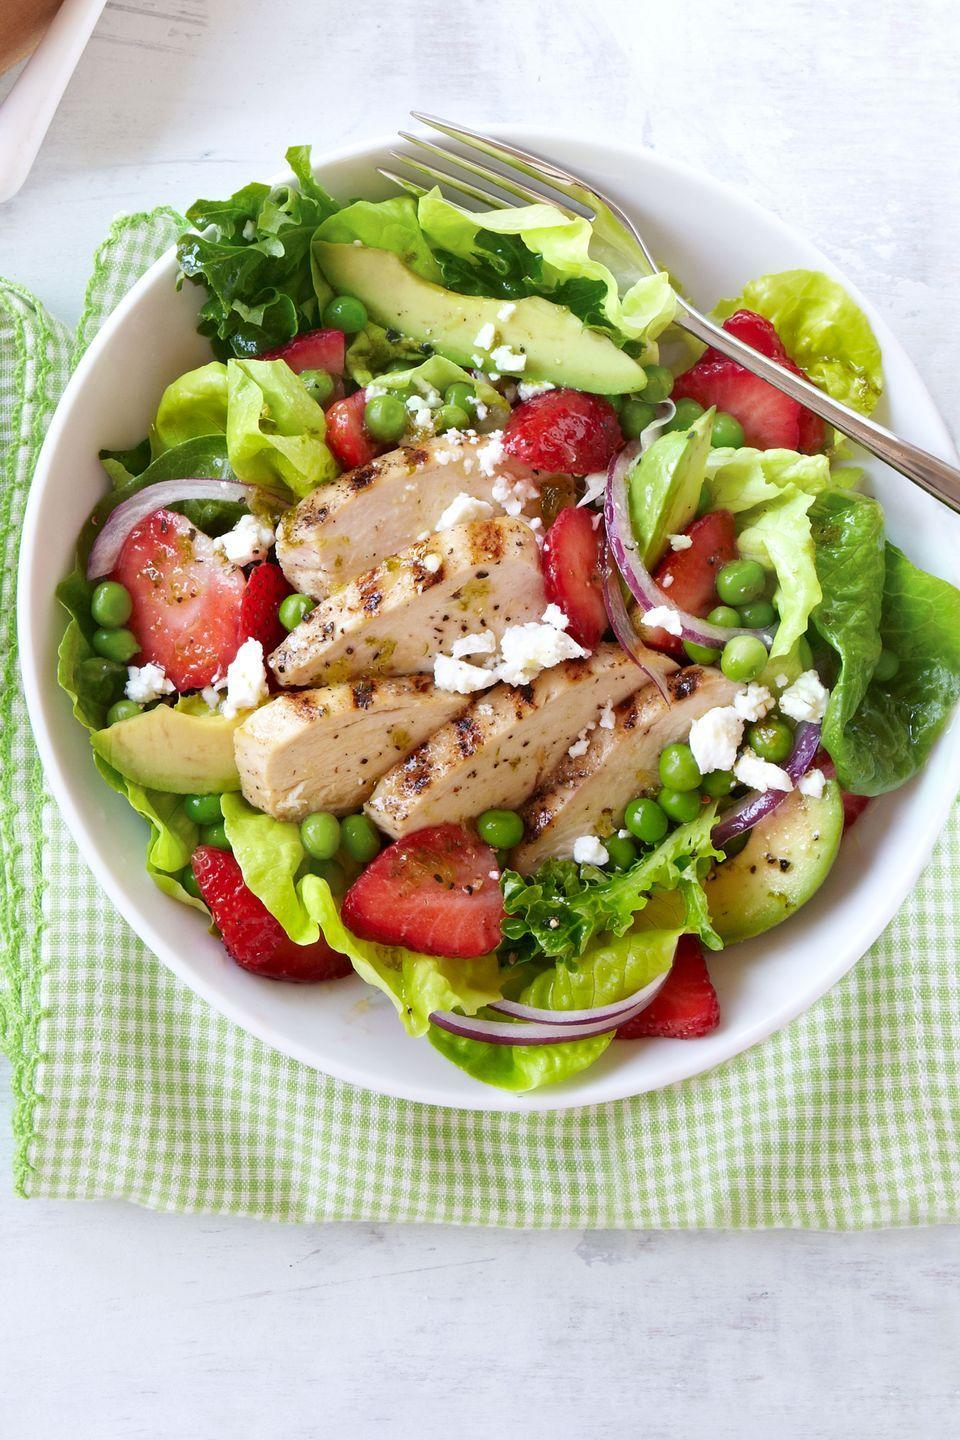 """<p>Fresh strawberries add a sweet and juicy element to this spring salad.</p><p><strong><a href=""""https://www.countryliving.com/food-drinks/recipes/a38097/grilled-chicken-and-strawberry-cobb-salad-recipe/"""" rel=""""nofollow noopener"""" target=""""_blank"""" data-ylk=""""slk:Get the recipe"""" class=""""link rapid-noclick-resp"""">Get the recipe</a>.</strong></p>"""